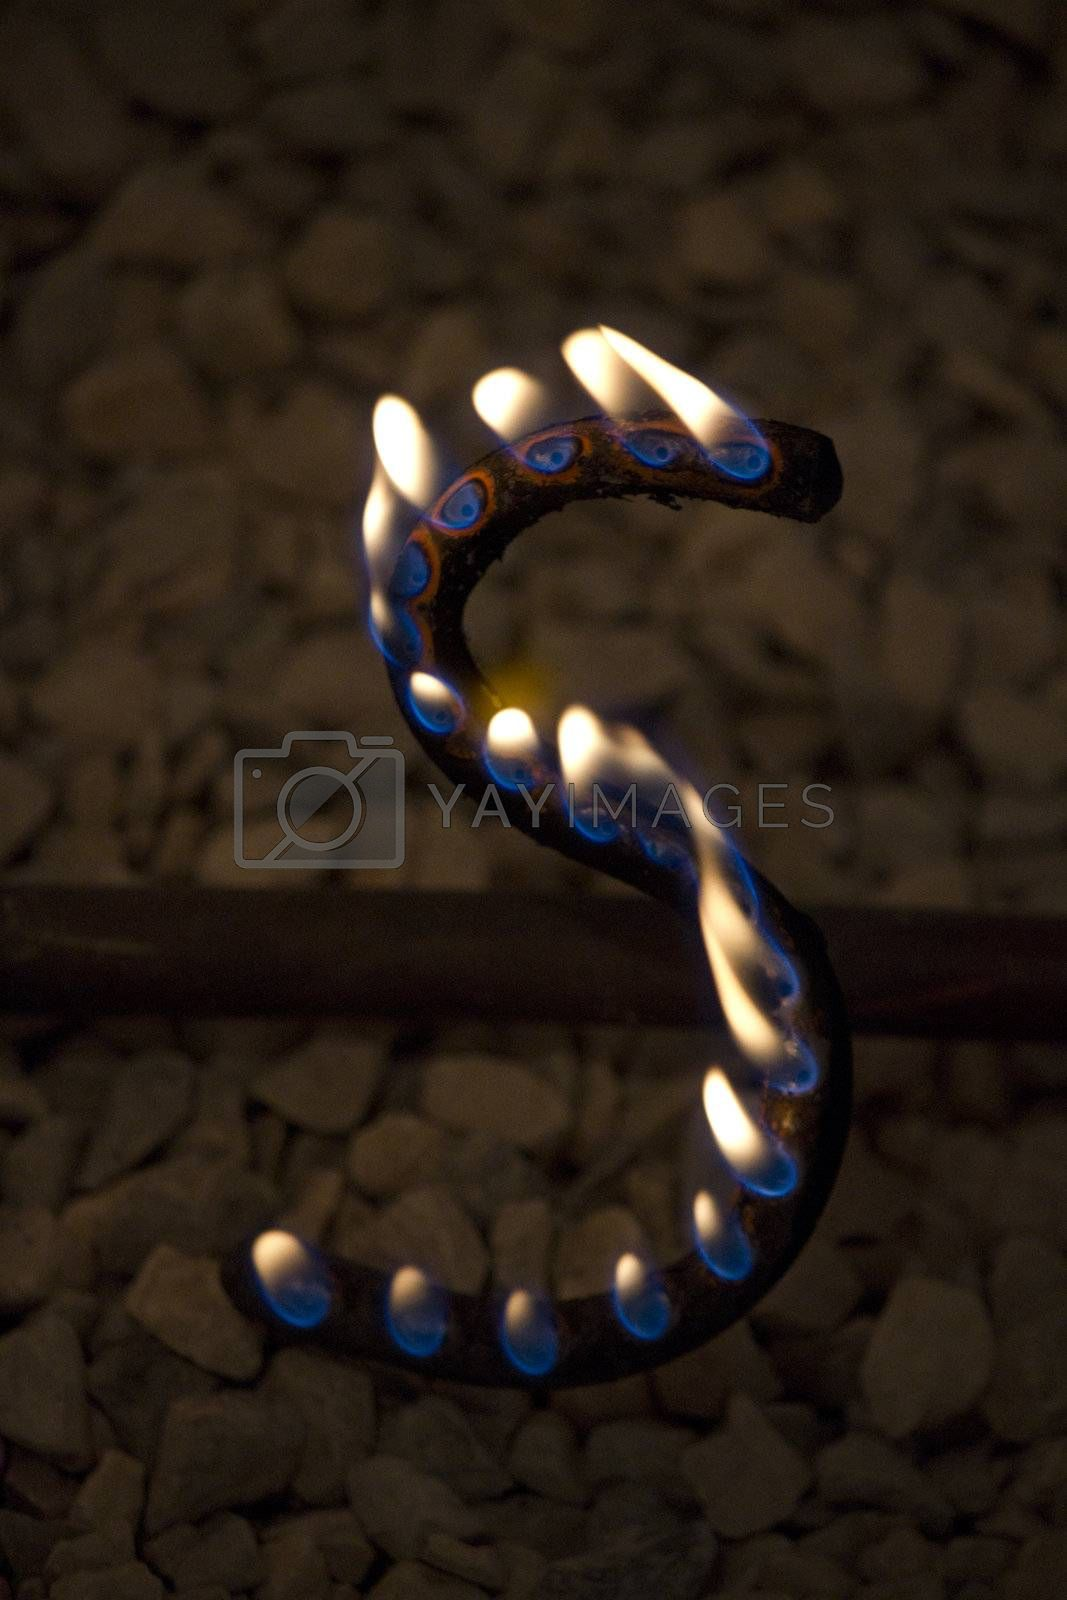 Close up view of an S letter made with iron with fire coming out of holes.